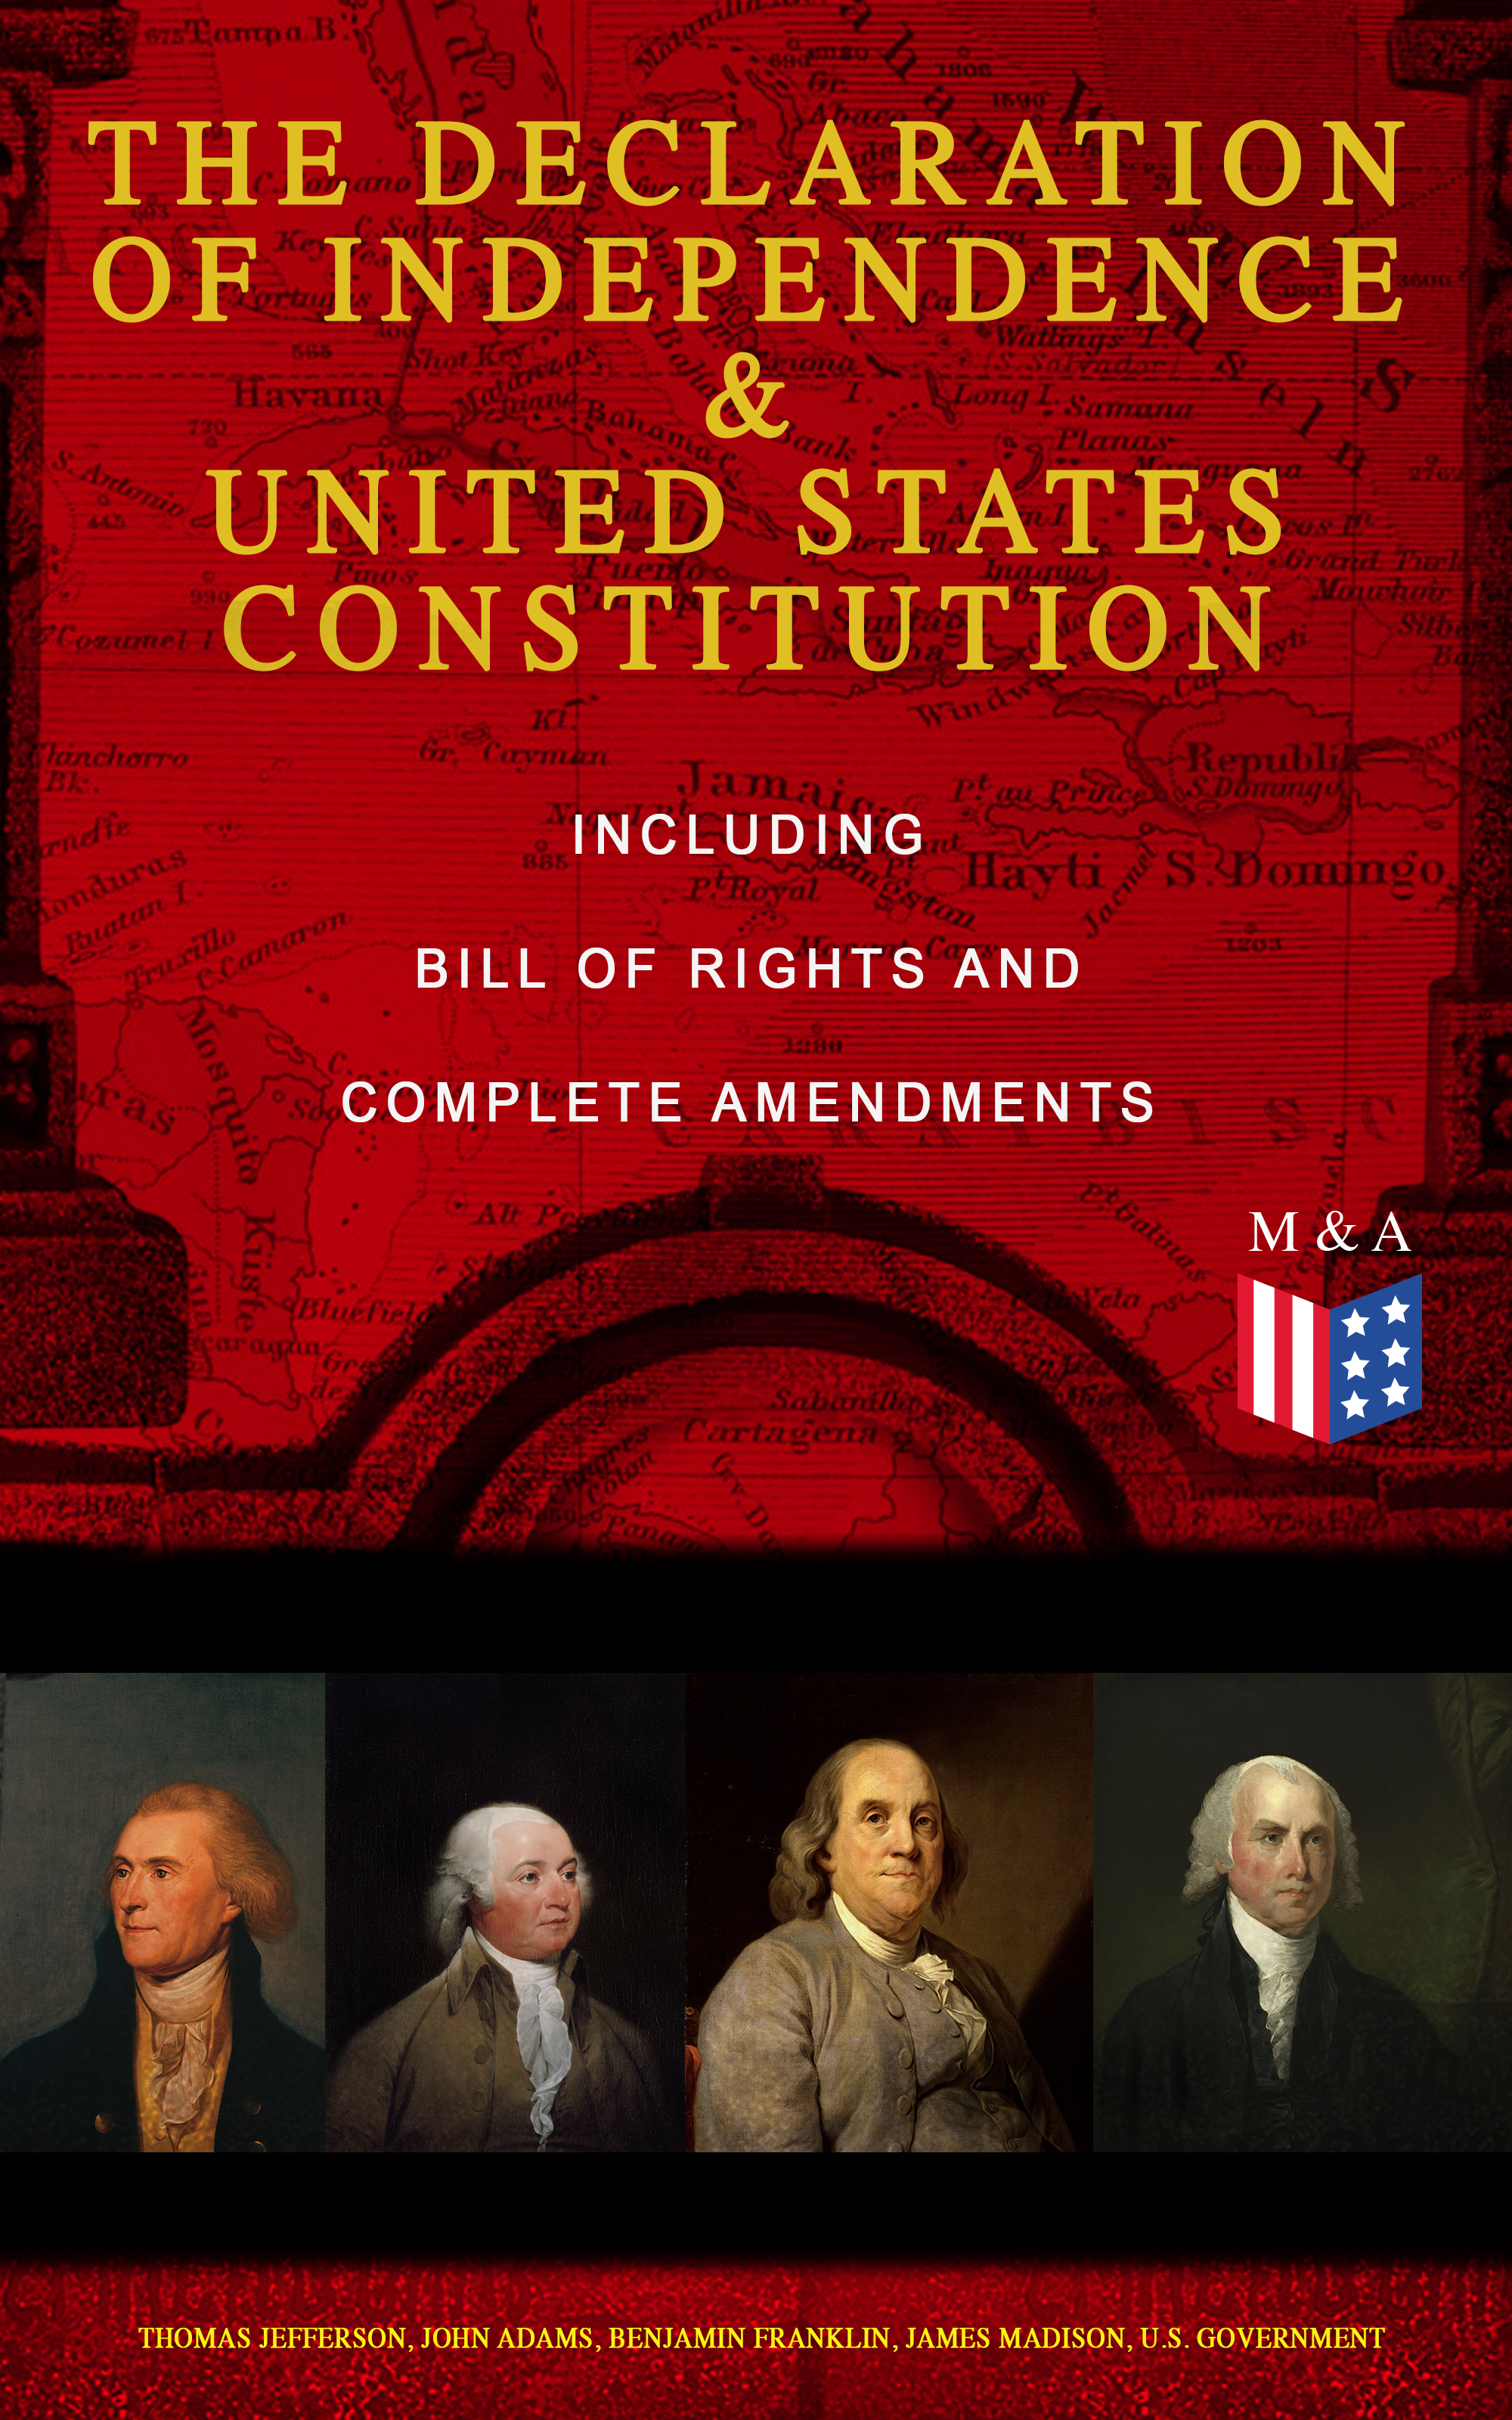 the declaration of independence united states constitution including bill of rights and complete amendments